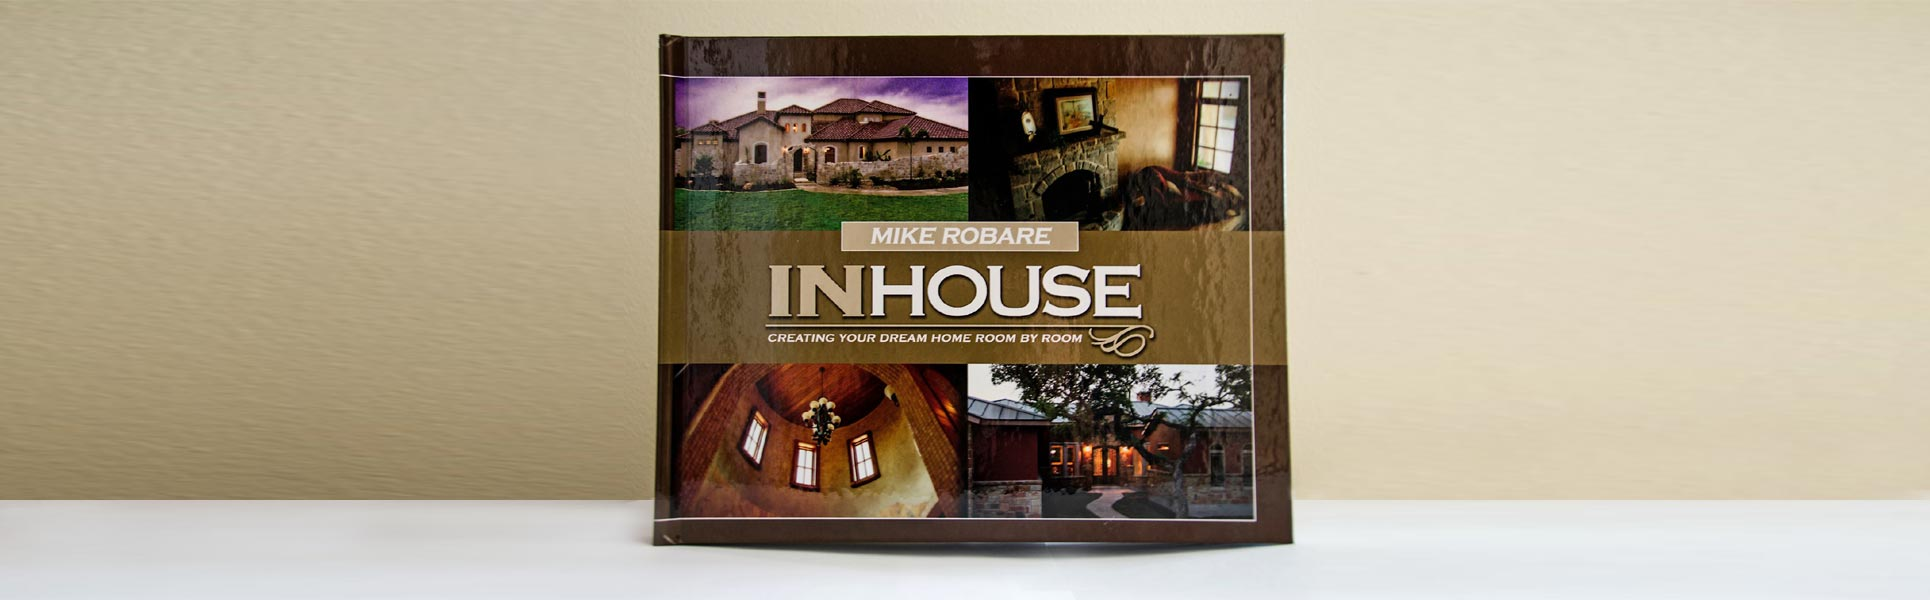 Book: Inhouse by Mike Robare